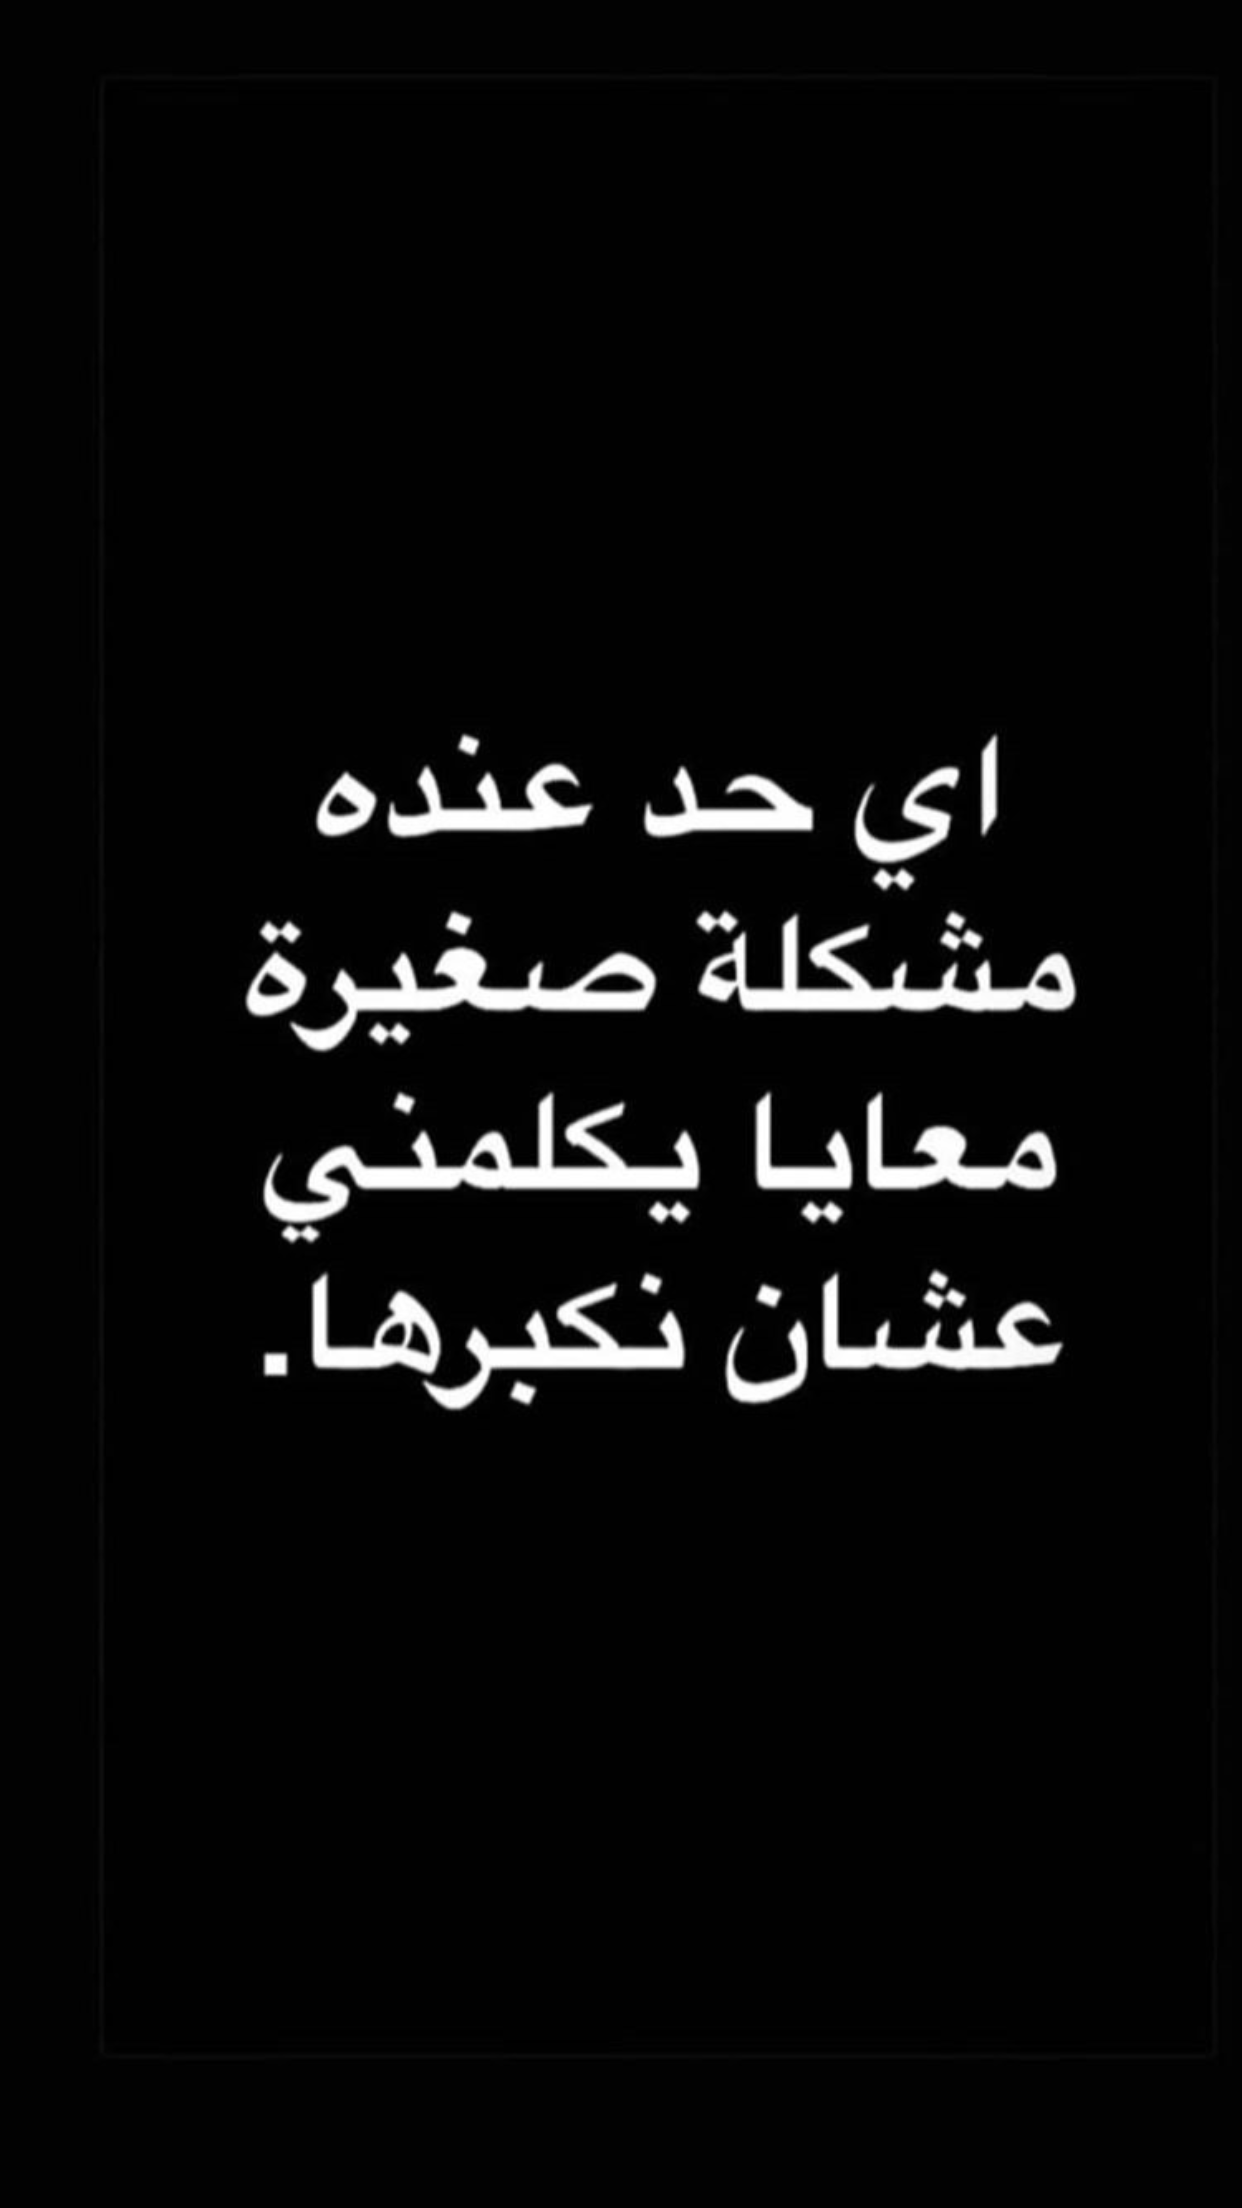 Pin By Jana Alawad Bagr On فعاليات ميمز Funny Quotes Funny Joke Quote Pretty Quotes